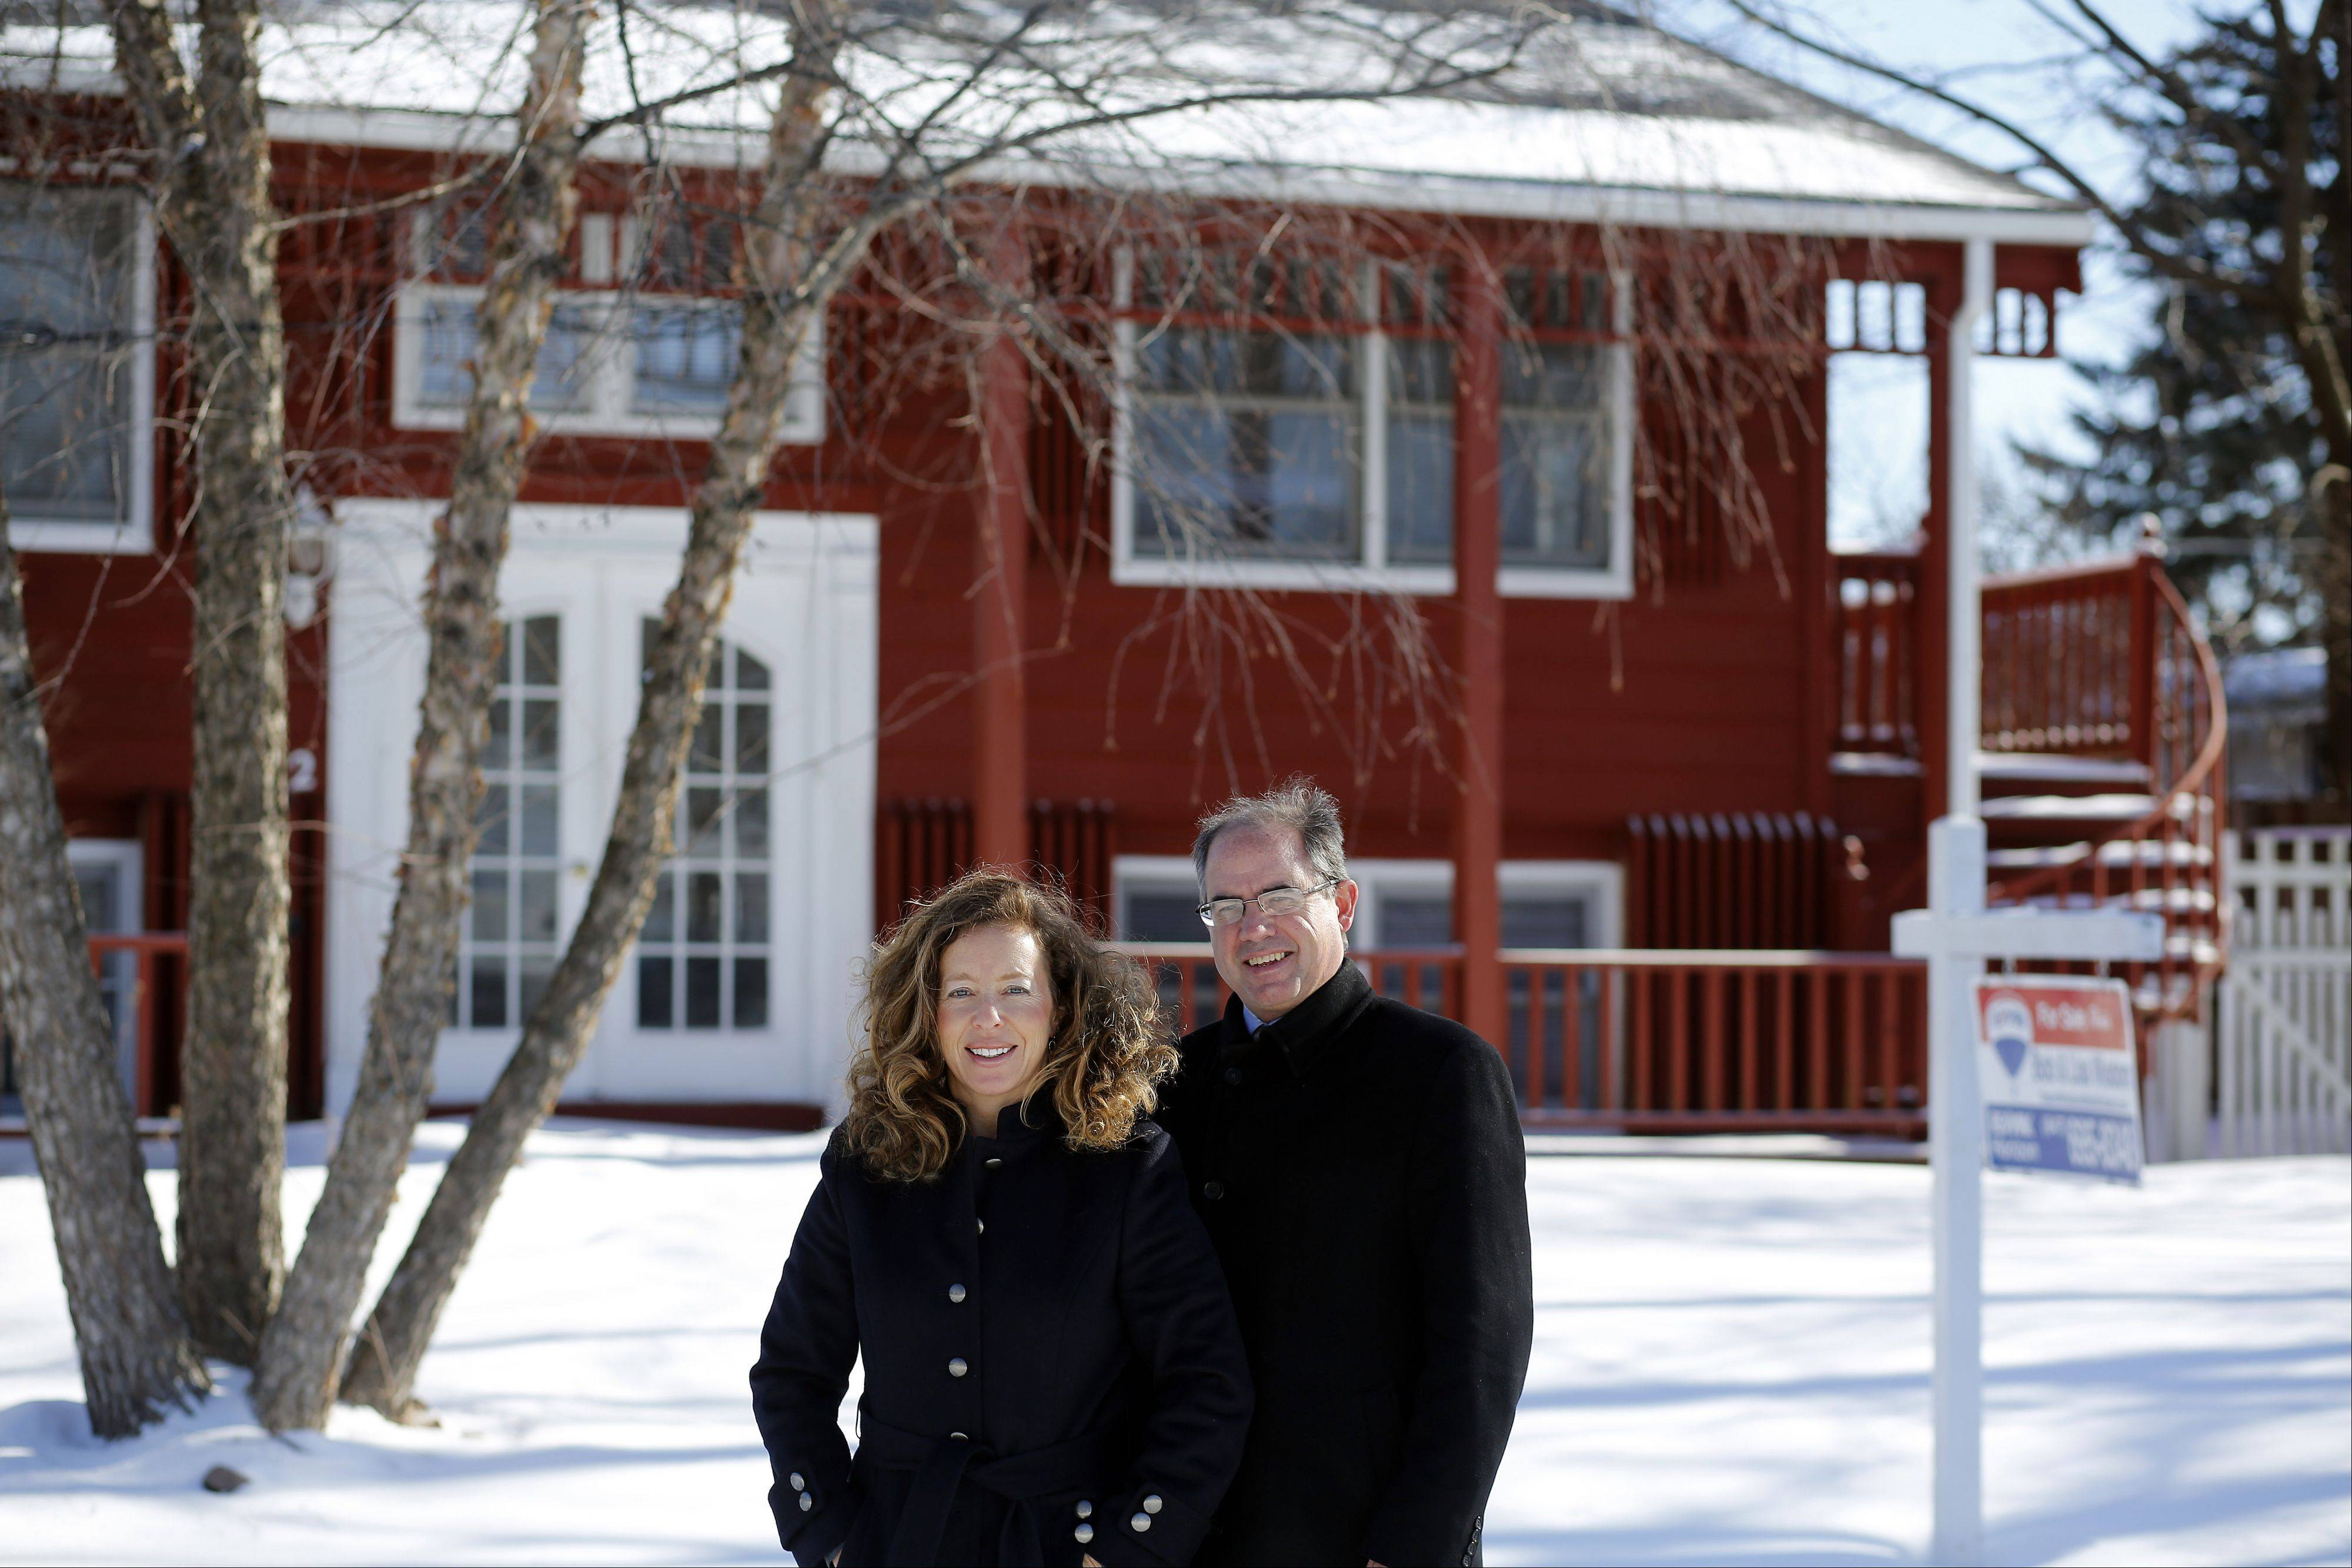 Realtors Bob and Lisa Wisdom say a low inventory of homes for sale, coupled with some harsh winter weather, has given the real estate market a slow start in 2014.